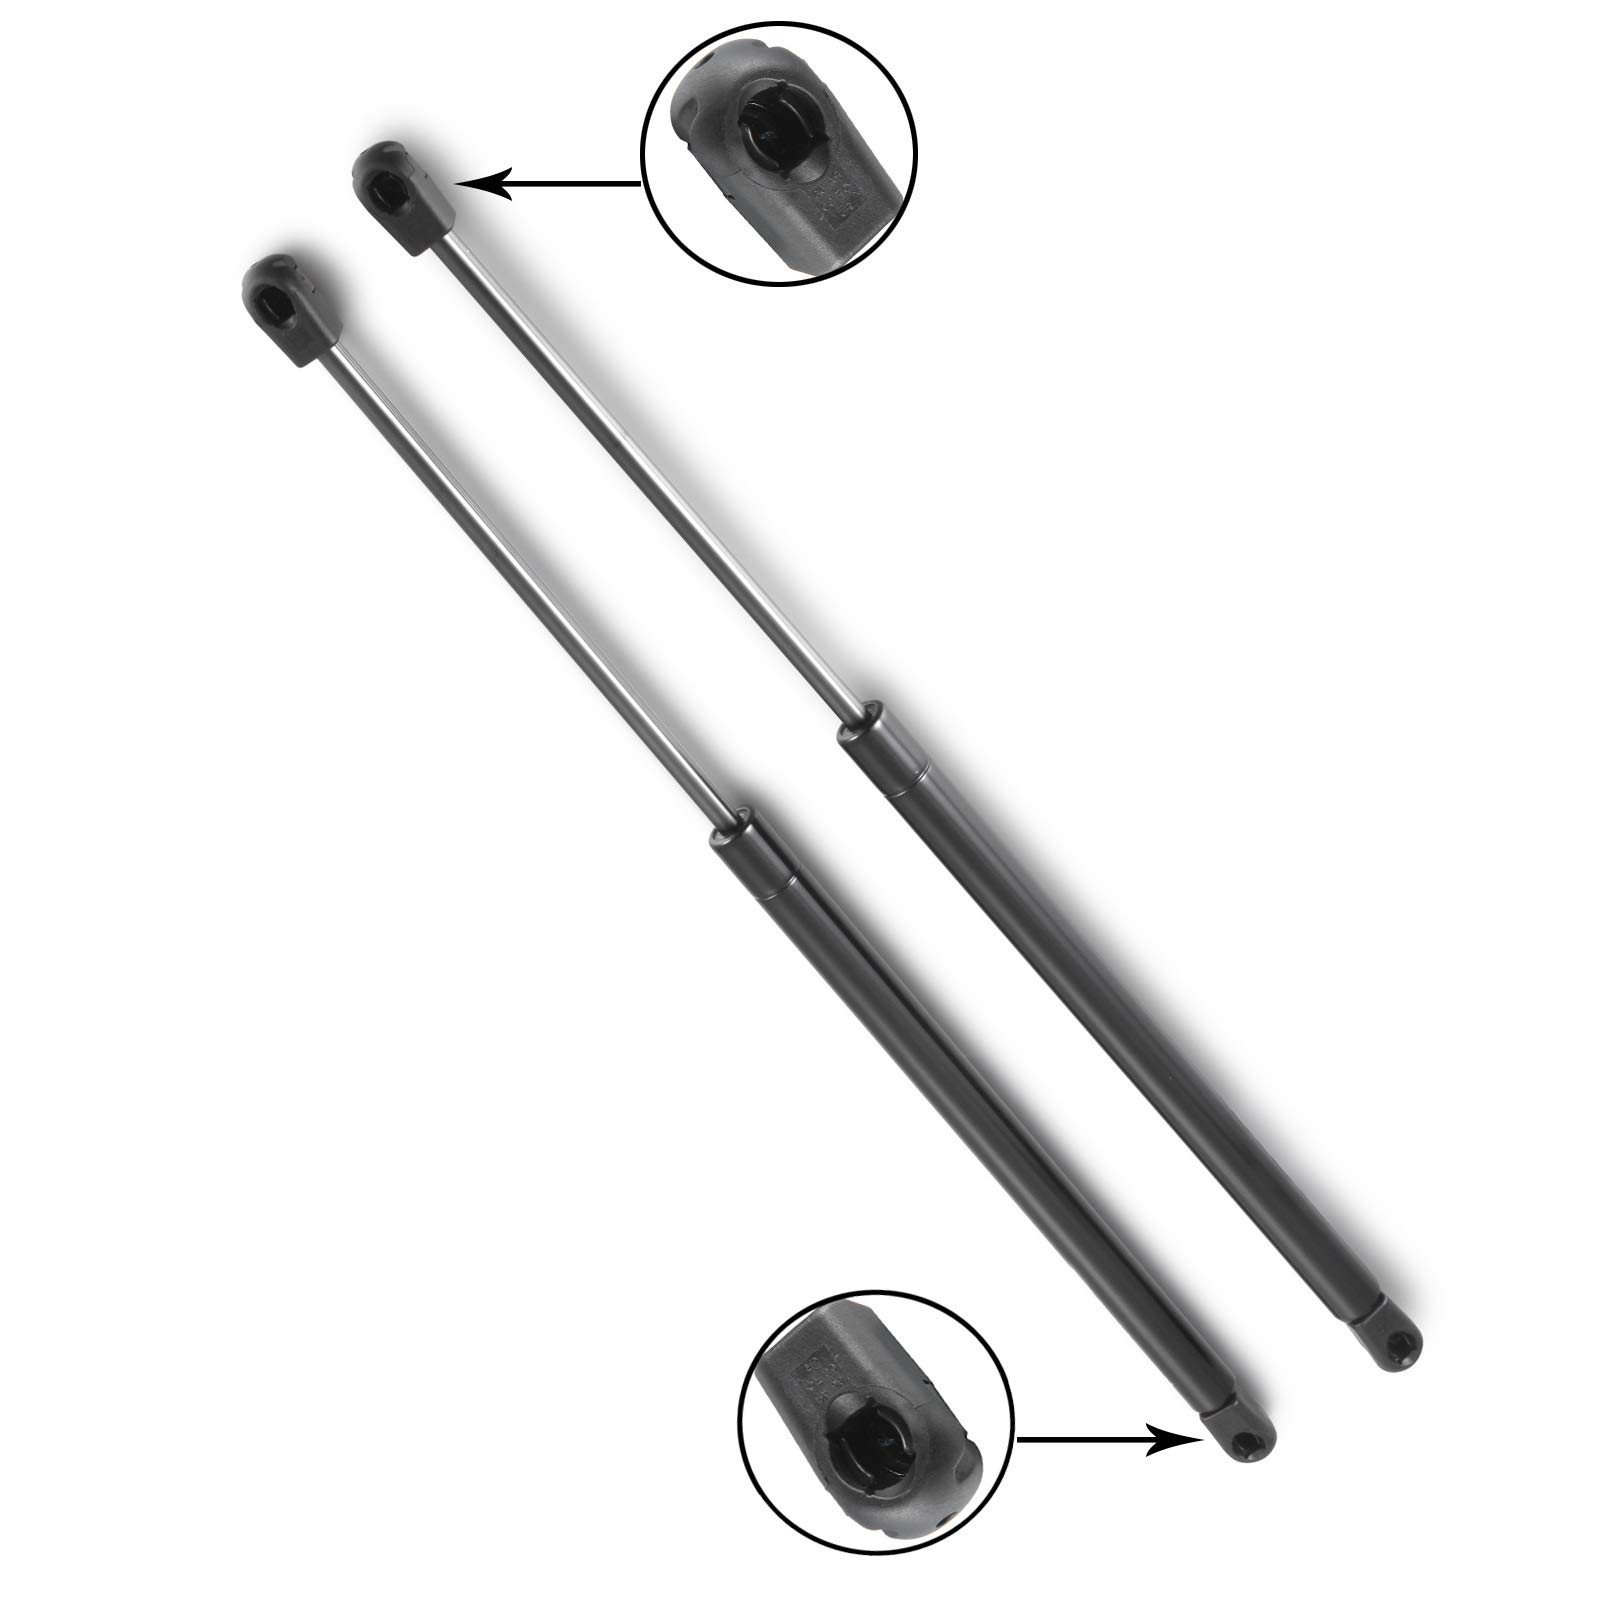 Madlife Garage Pair of REAR Tailgate Boot Gas Struts Springs 2S51B406A10AD 2S51B406A10AC For Fiesta V 3 Doors 2002-2008